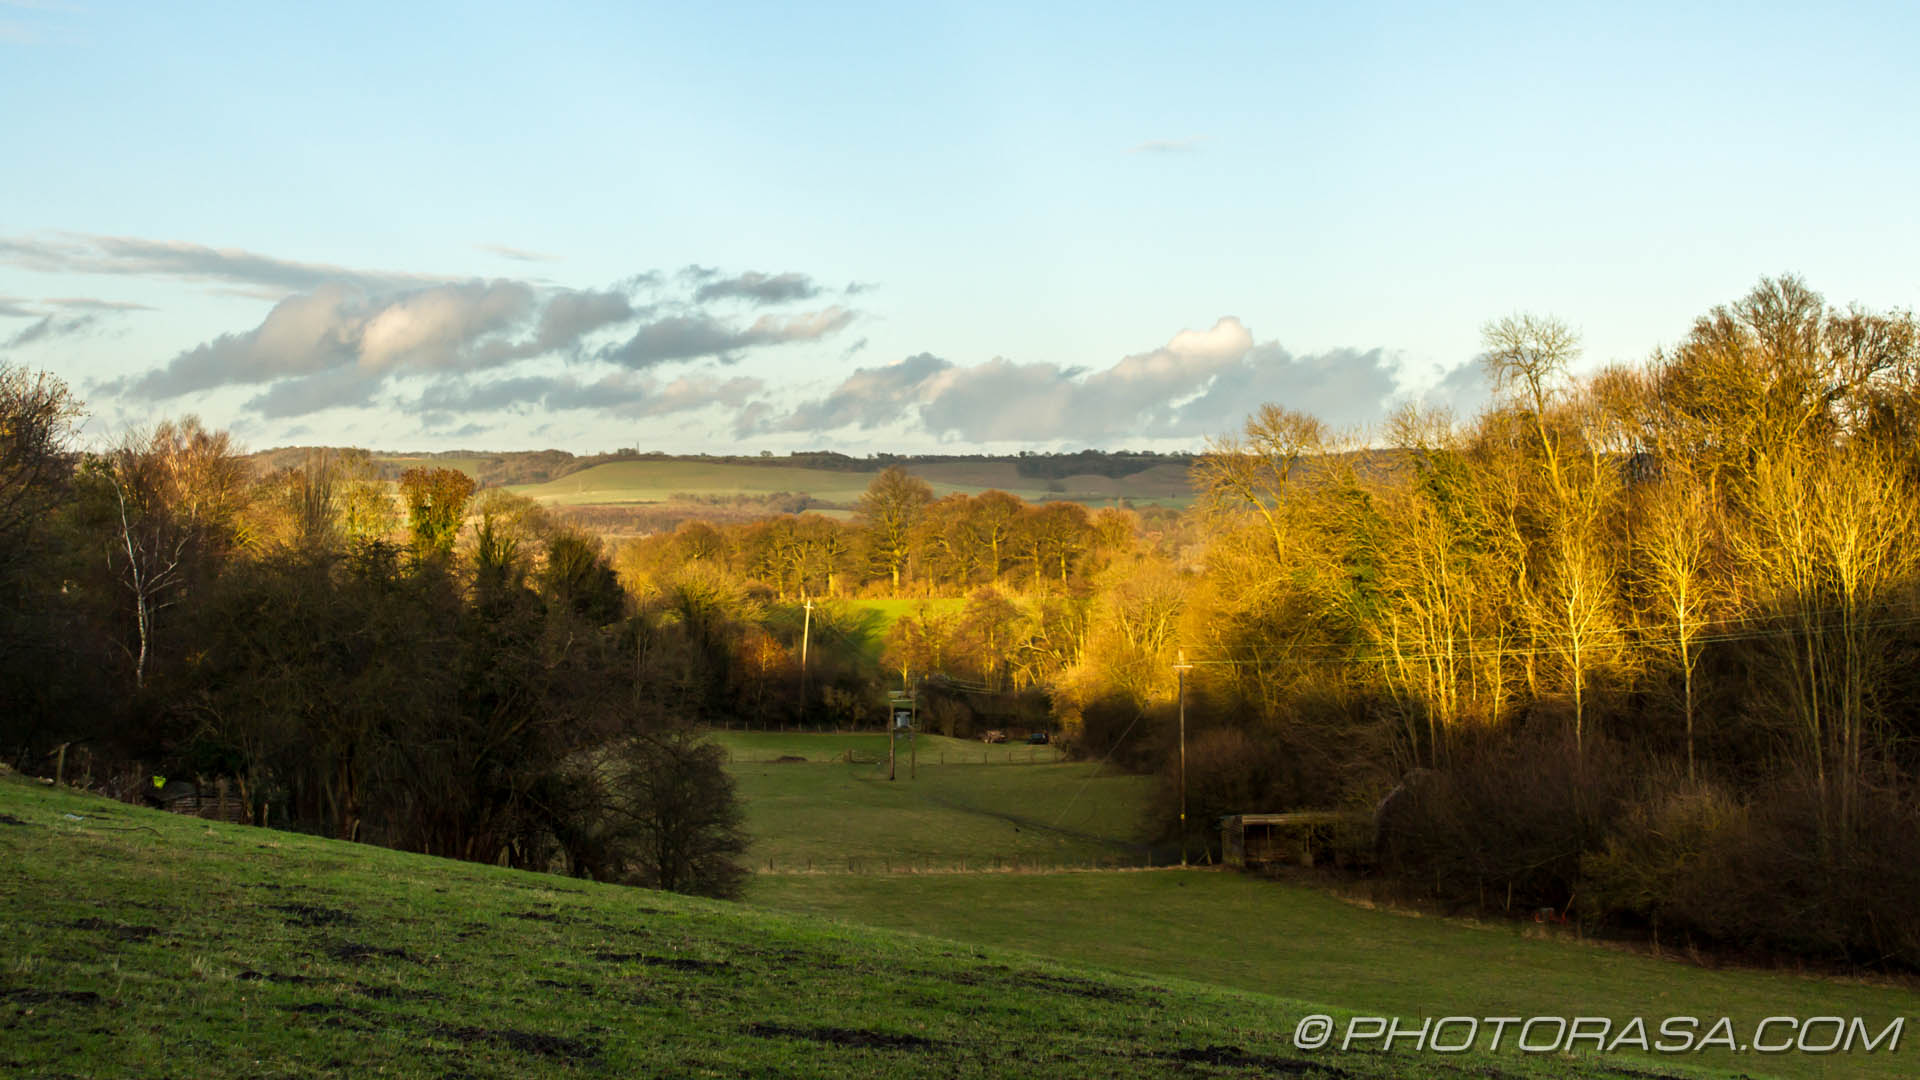 http://photorasa.com/countryside-otham/light-on-tree-tops-across-field-in-langley/